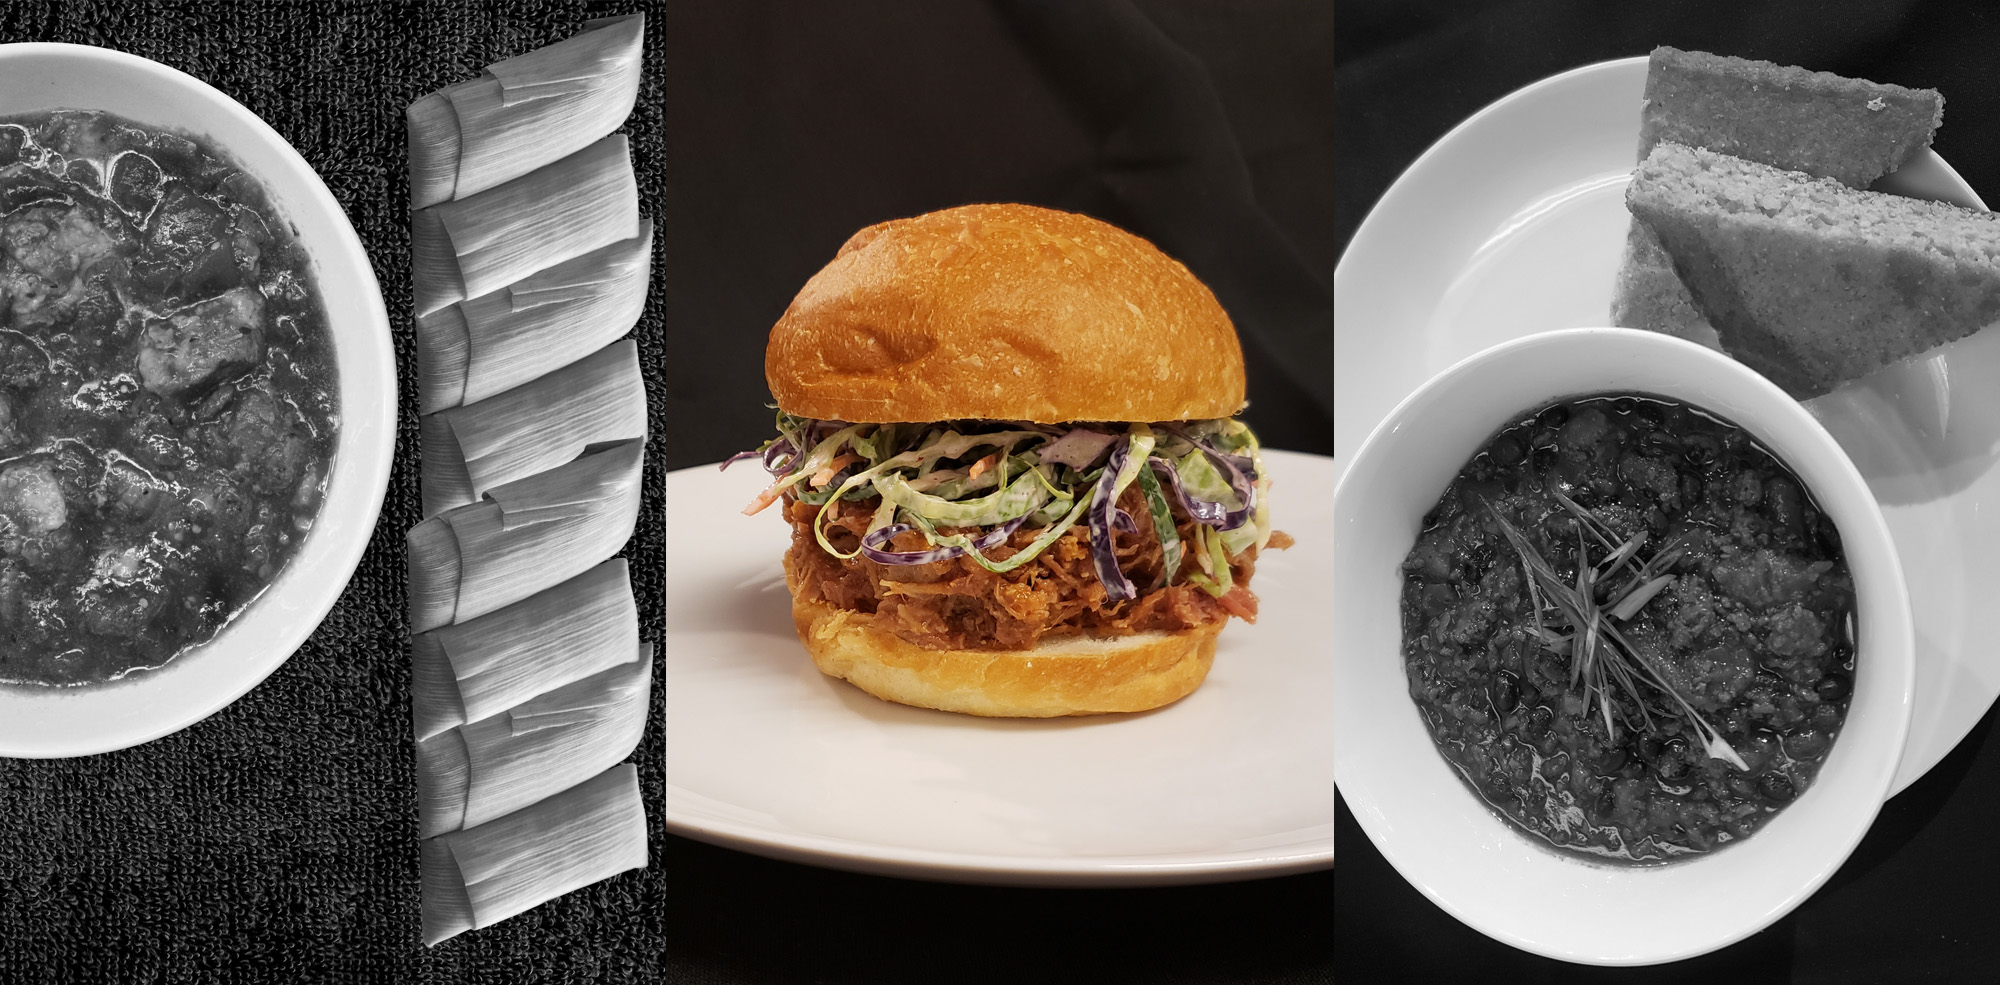 SPRING BREAK KITS   NIMAN RANCH BBQ PULLED PORK + BRIOCHE BUNS + MARKET-MADE CAROLINA GOLD BBQ SAUCE + MARKET-MADE COLE SLAW = EASILY ENOUGH FOR 4 $39.99  ORDER HERE